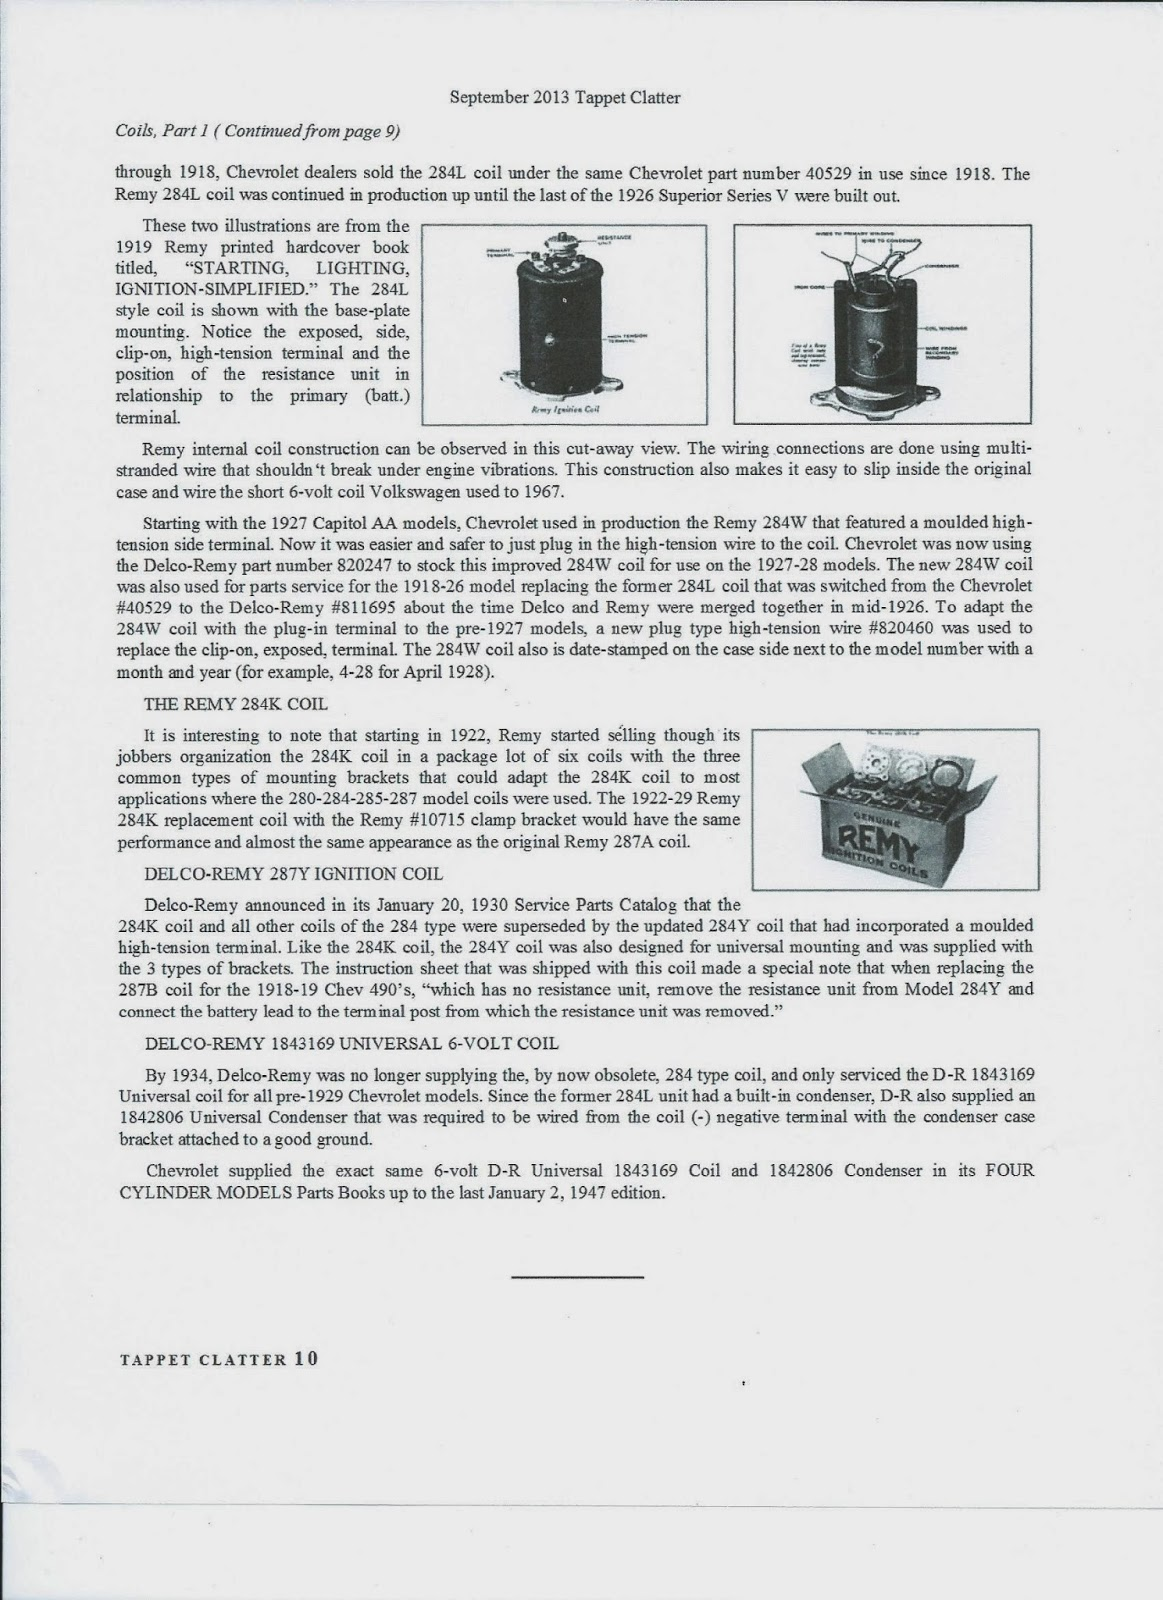 Chev 235 Guy Evolution Of The Chevrolet Coil Wiring Simplified Book These Articles Are Copied With Permission From Vcca Publication